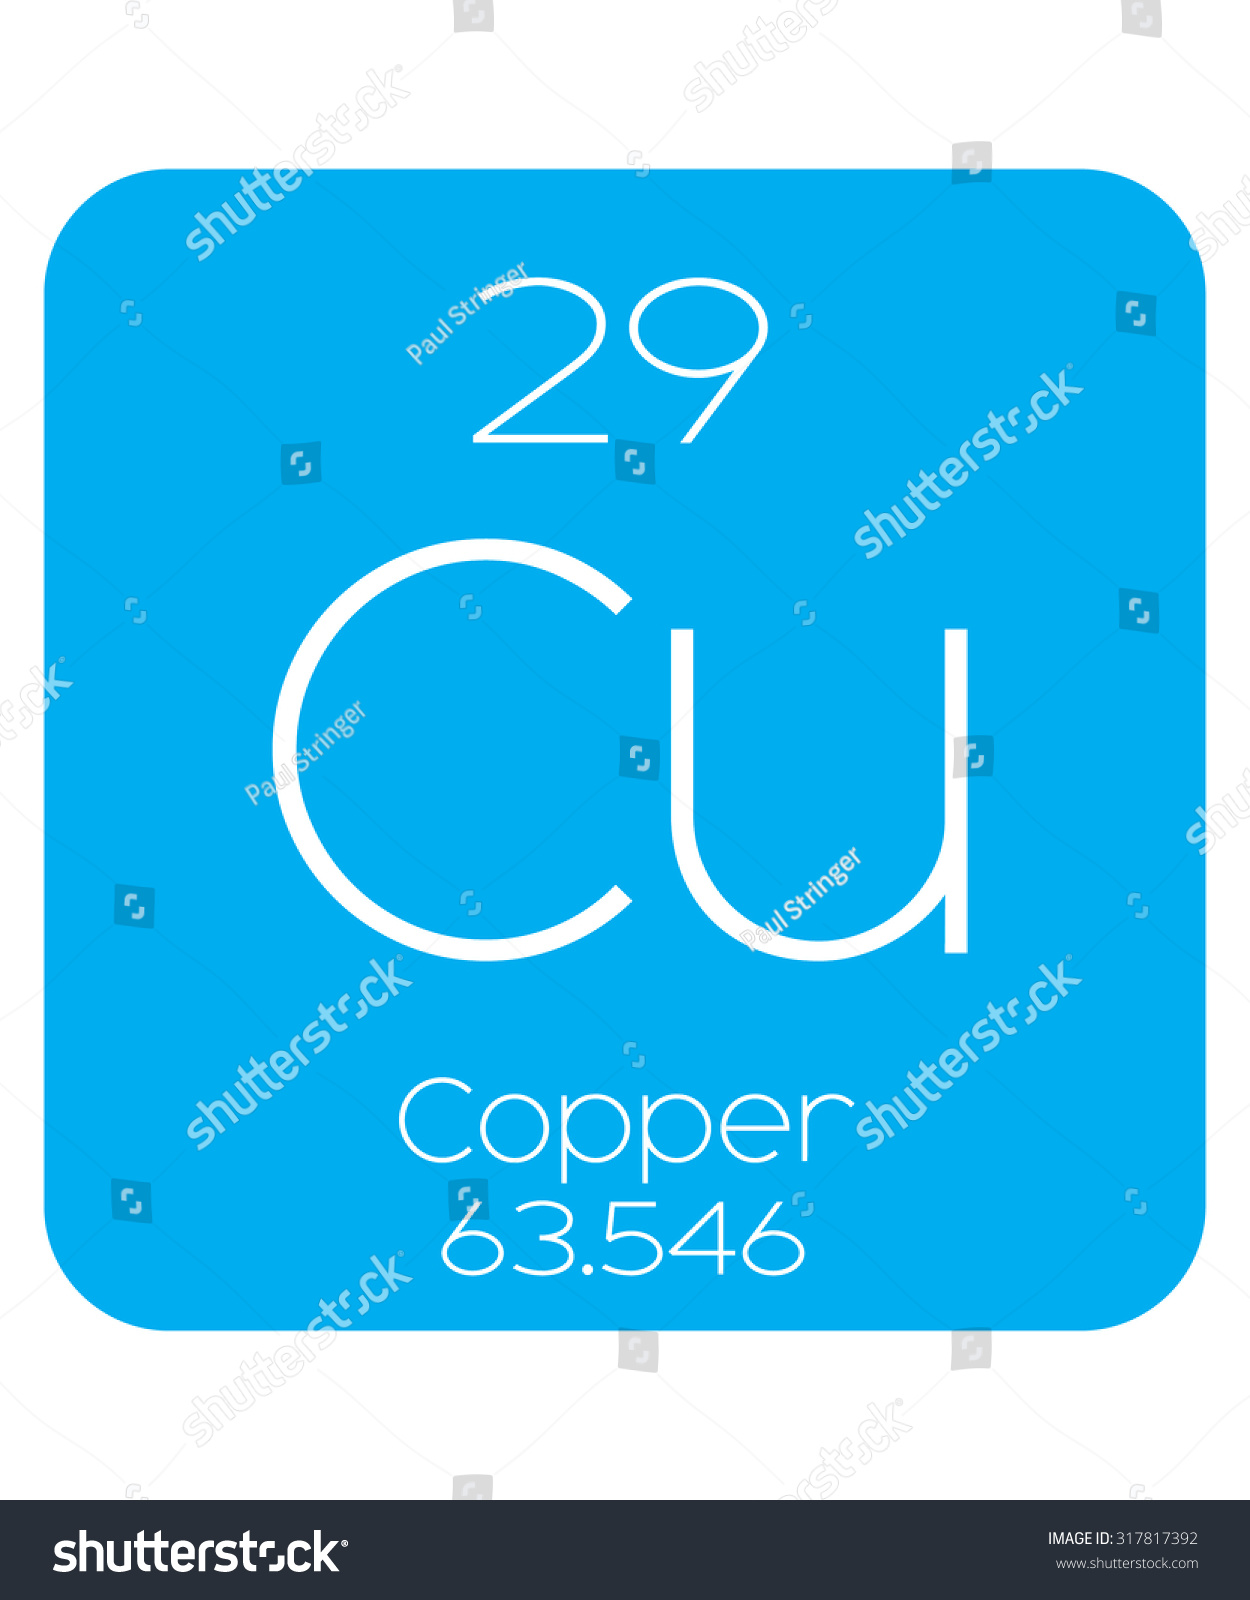 Informative illustration periodic element copper stock illustration an informative illustration of the periodic element copper buycottarizona Image collections